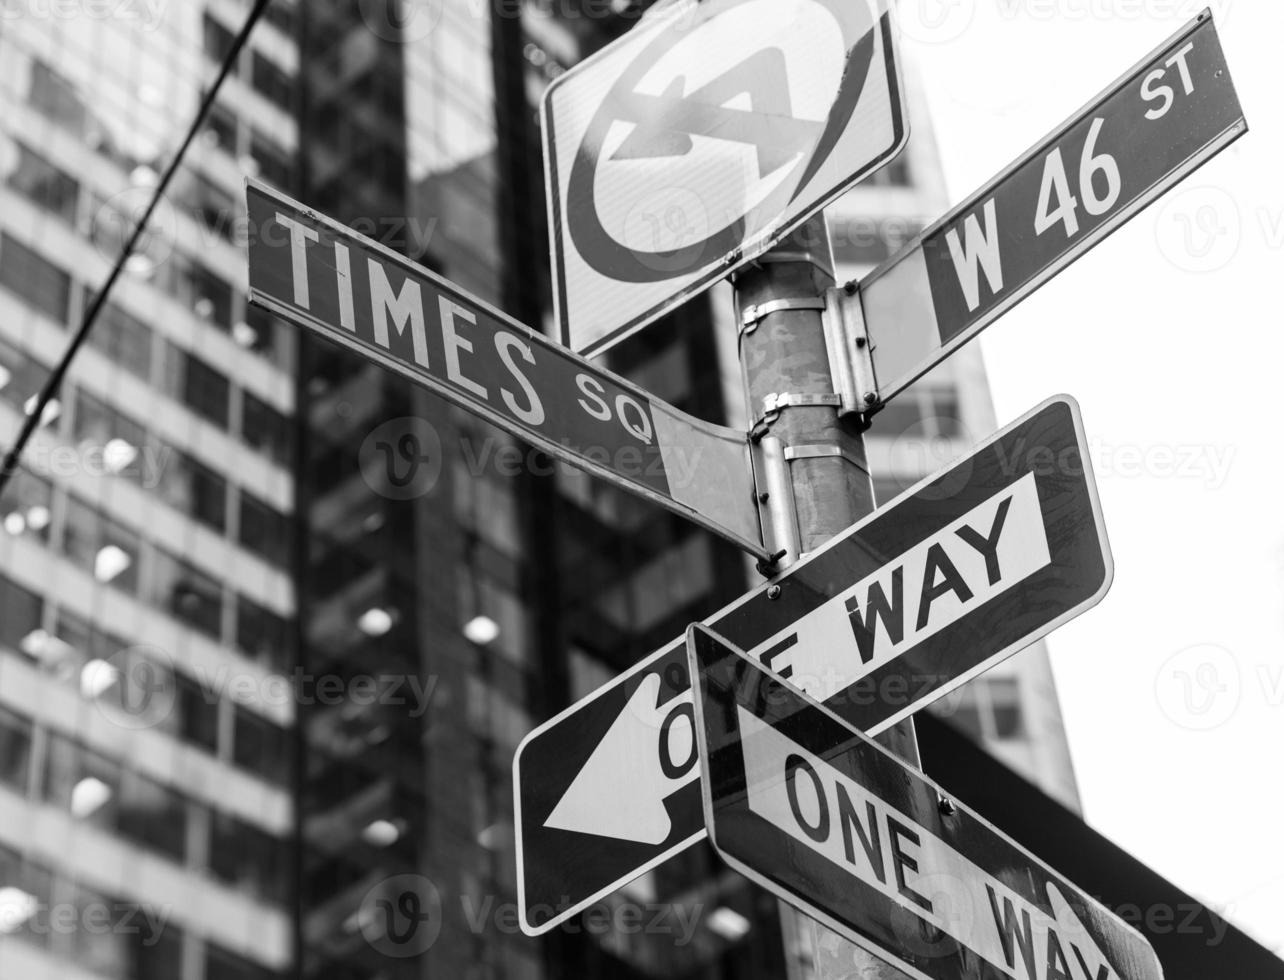 Times Square Signs & W 46 St New York photo